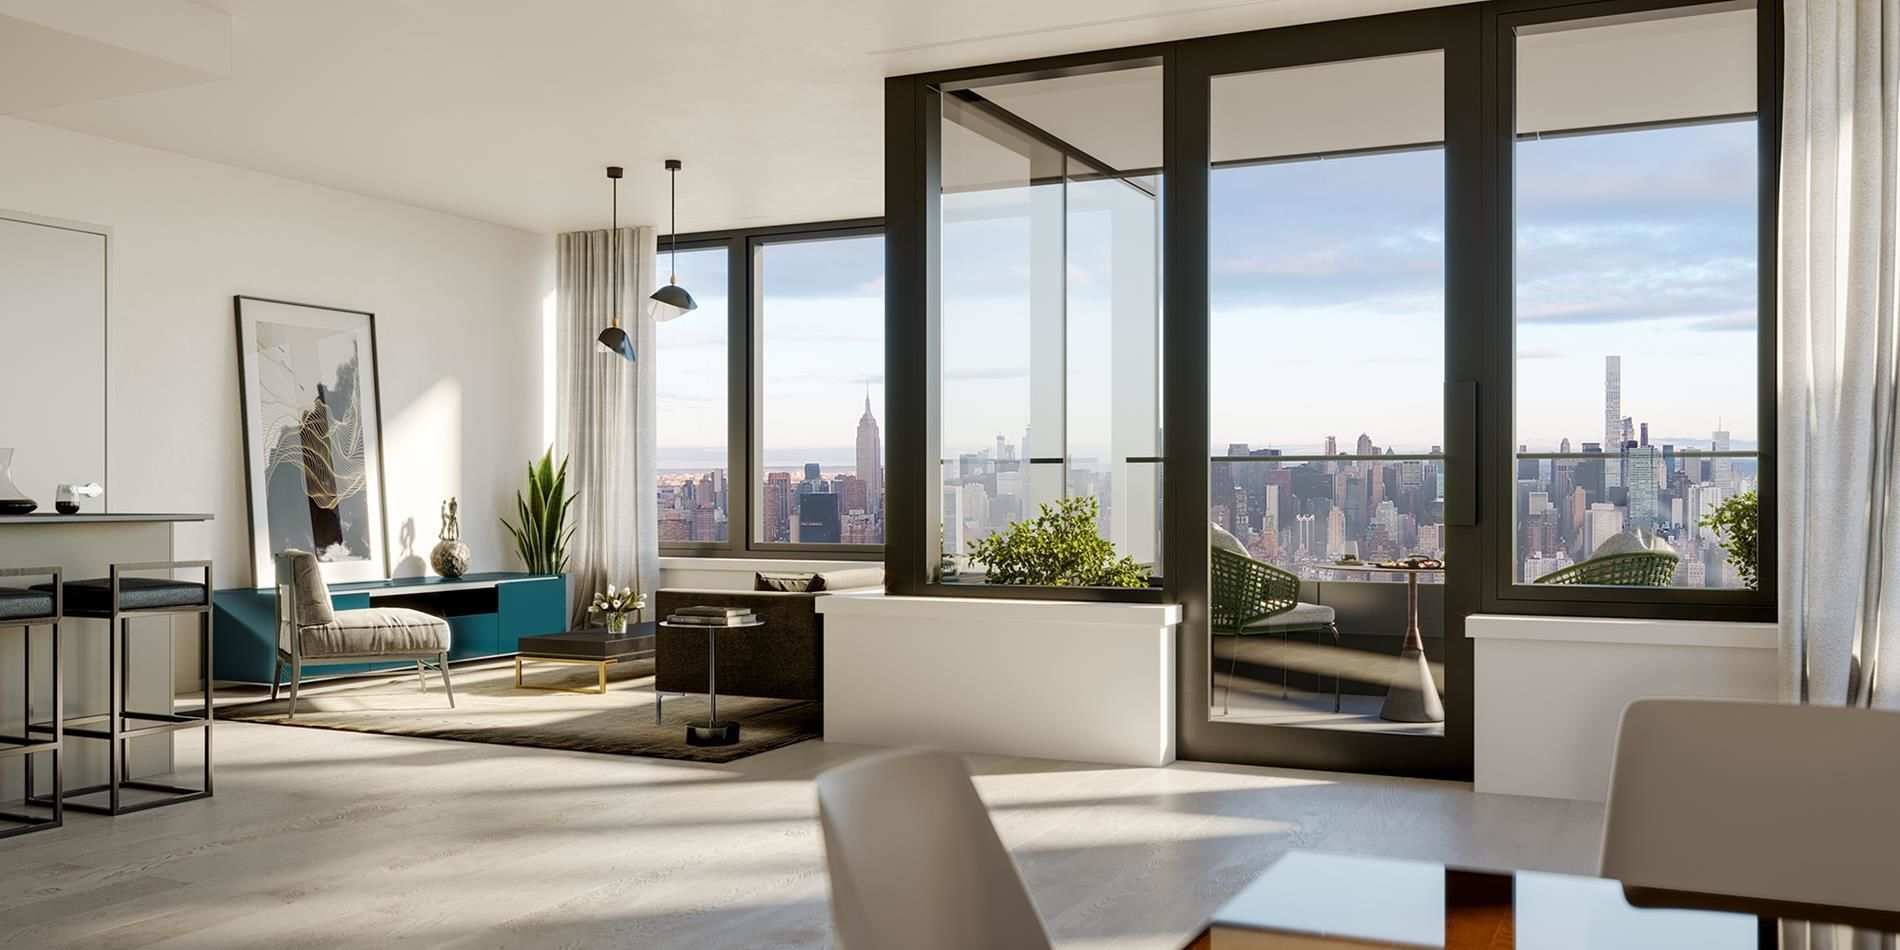 Apartment for sale at 23-15 44th Dr, Apt 1103